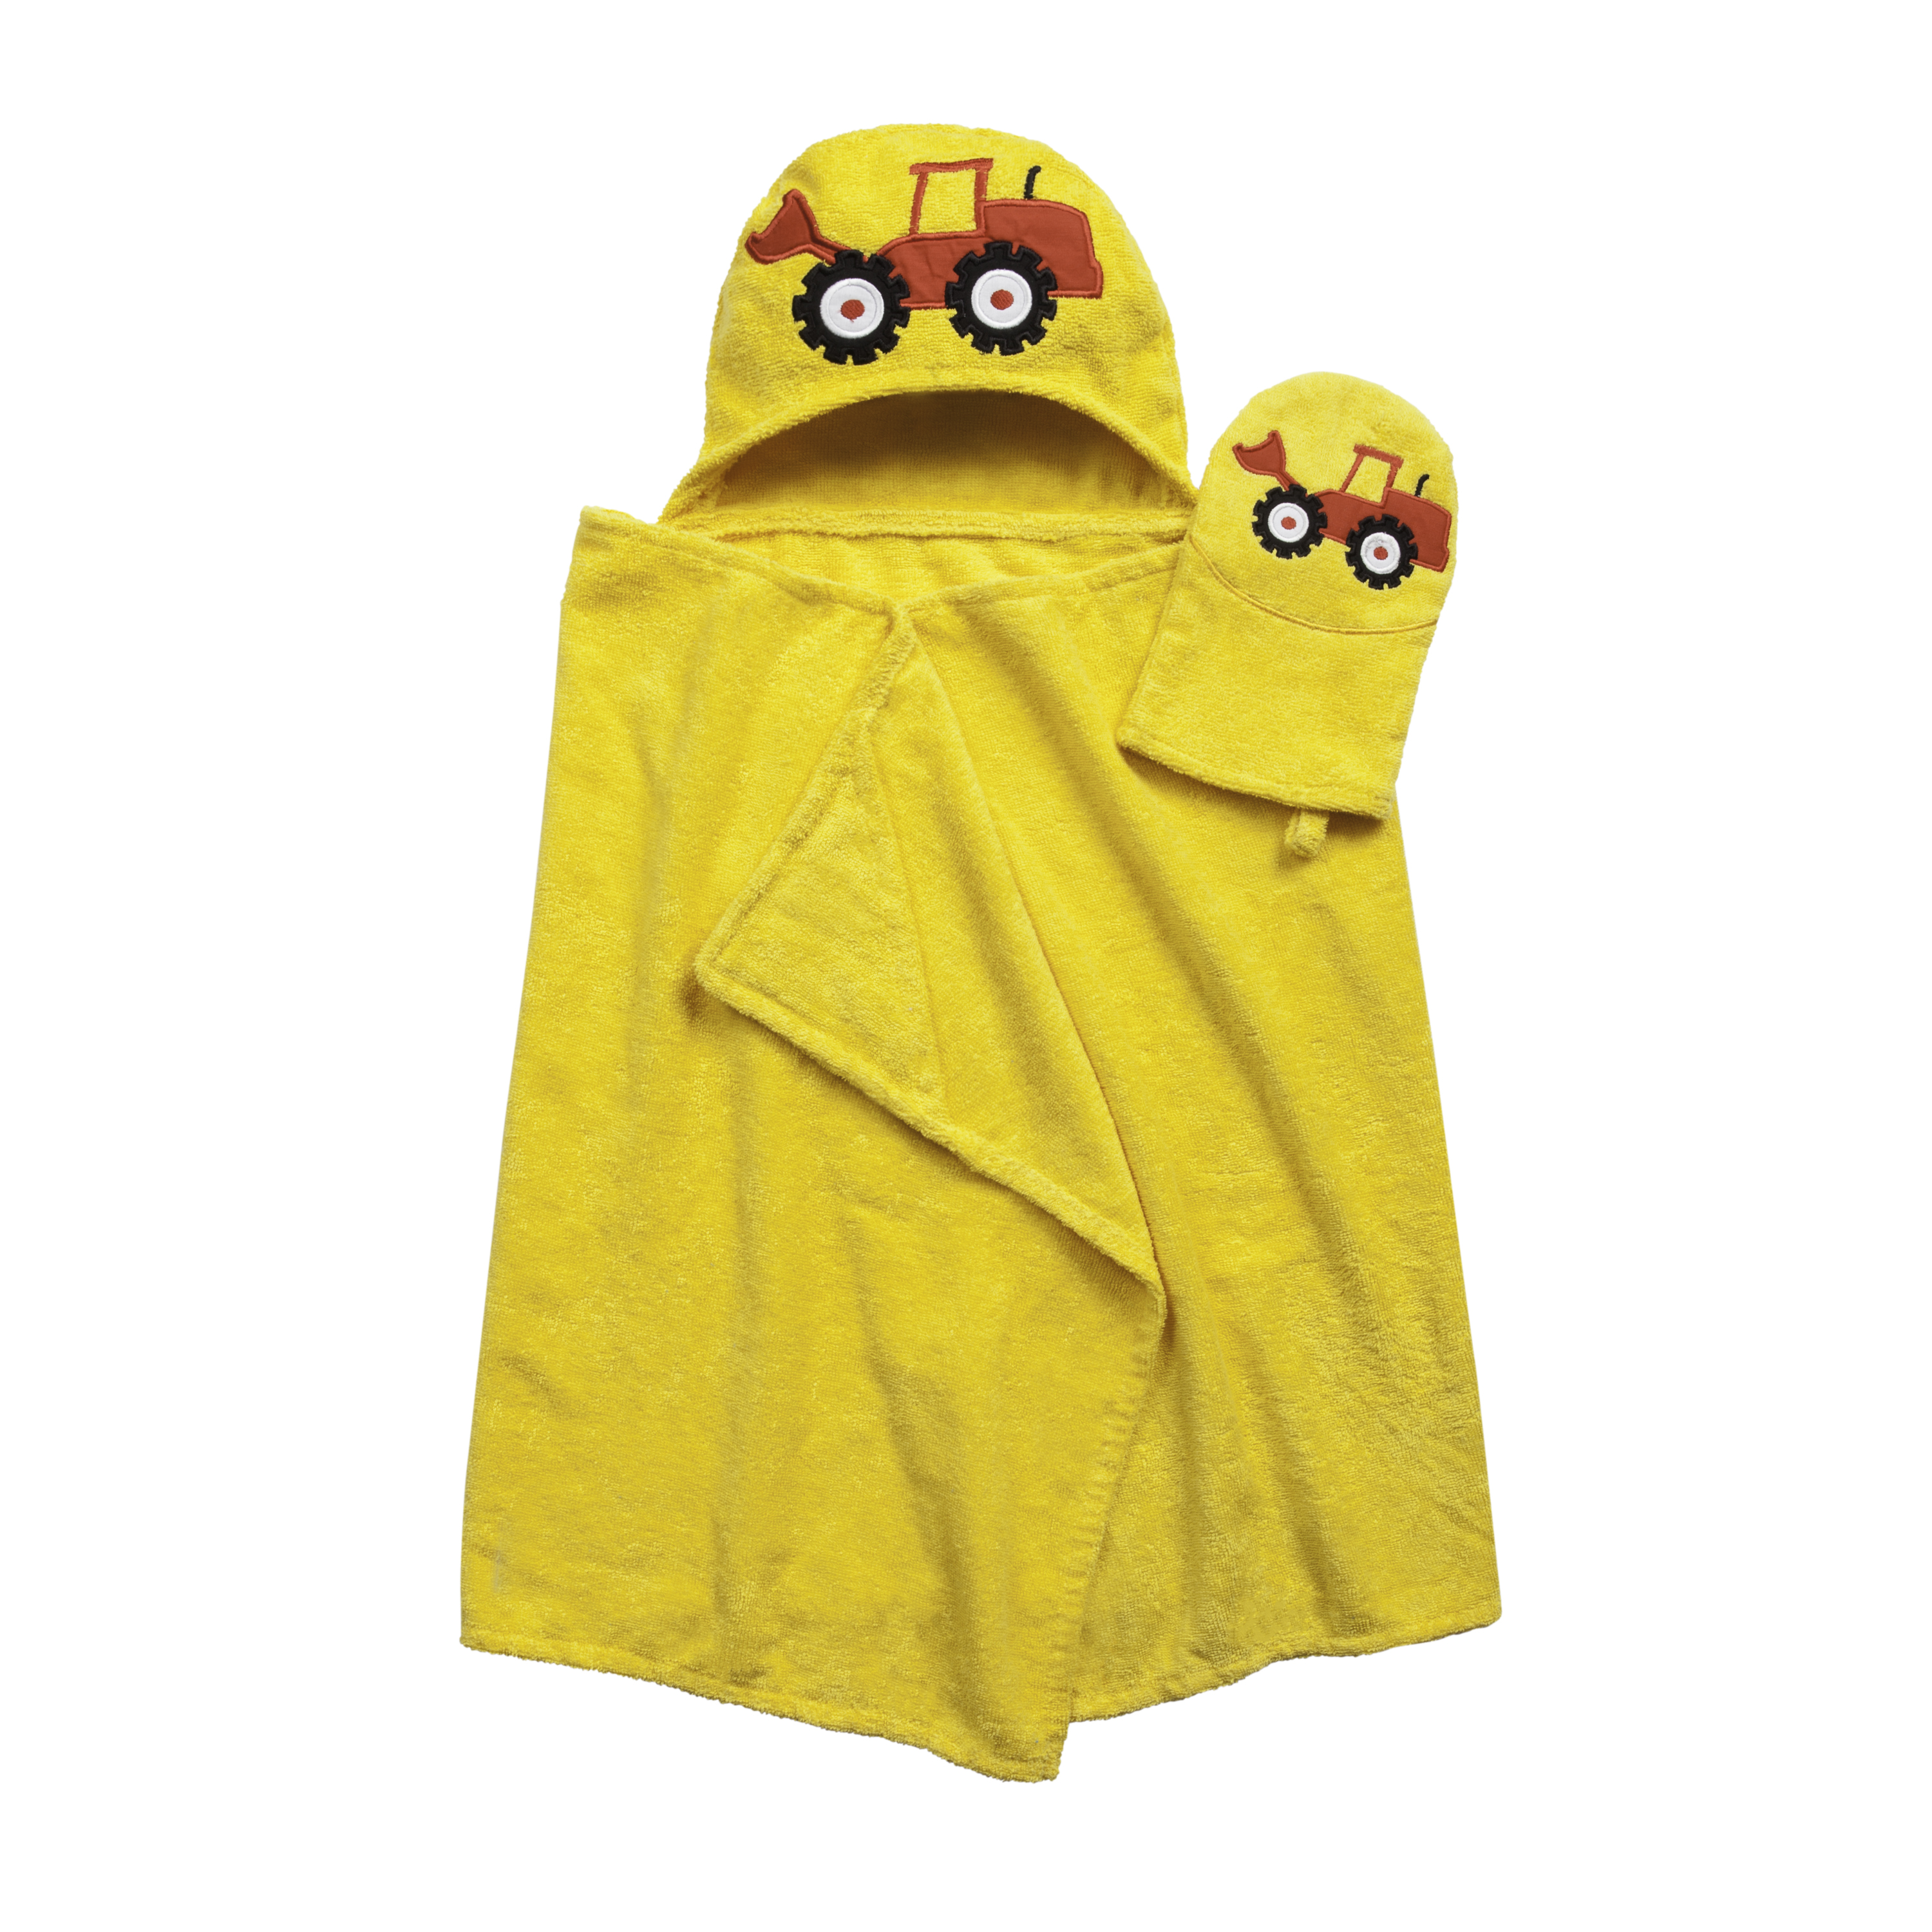 Tub Time Tots Tractor Hooded Kids Bath Wrap with Mitt - 2 Piece Set